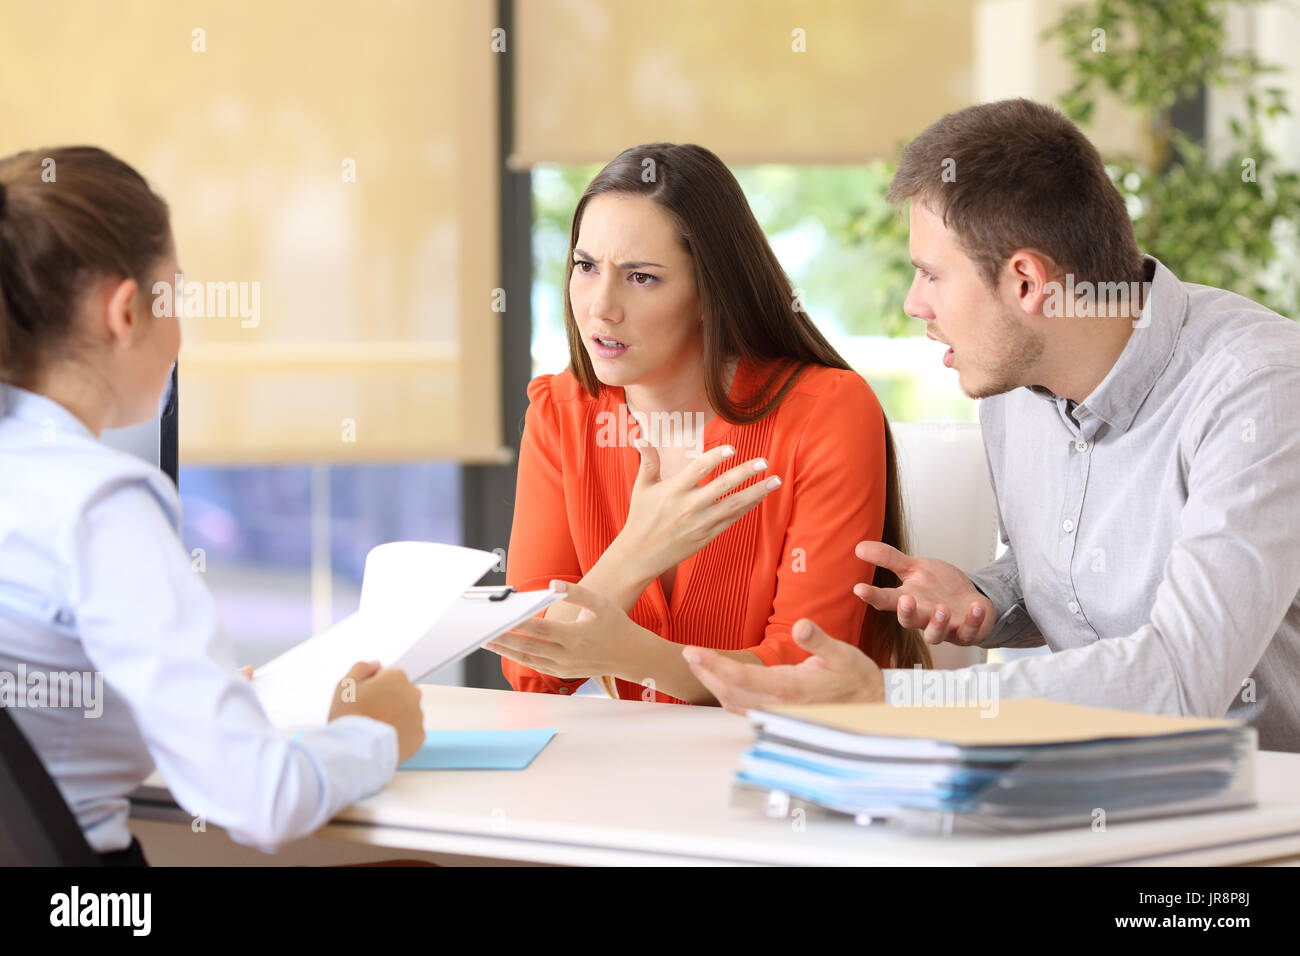 Angry couple arguing telling their problems sitting in a desktop of a marriage counseling or office - Stock Image